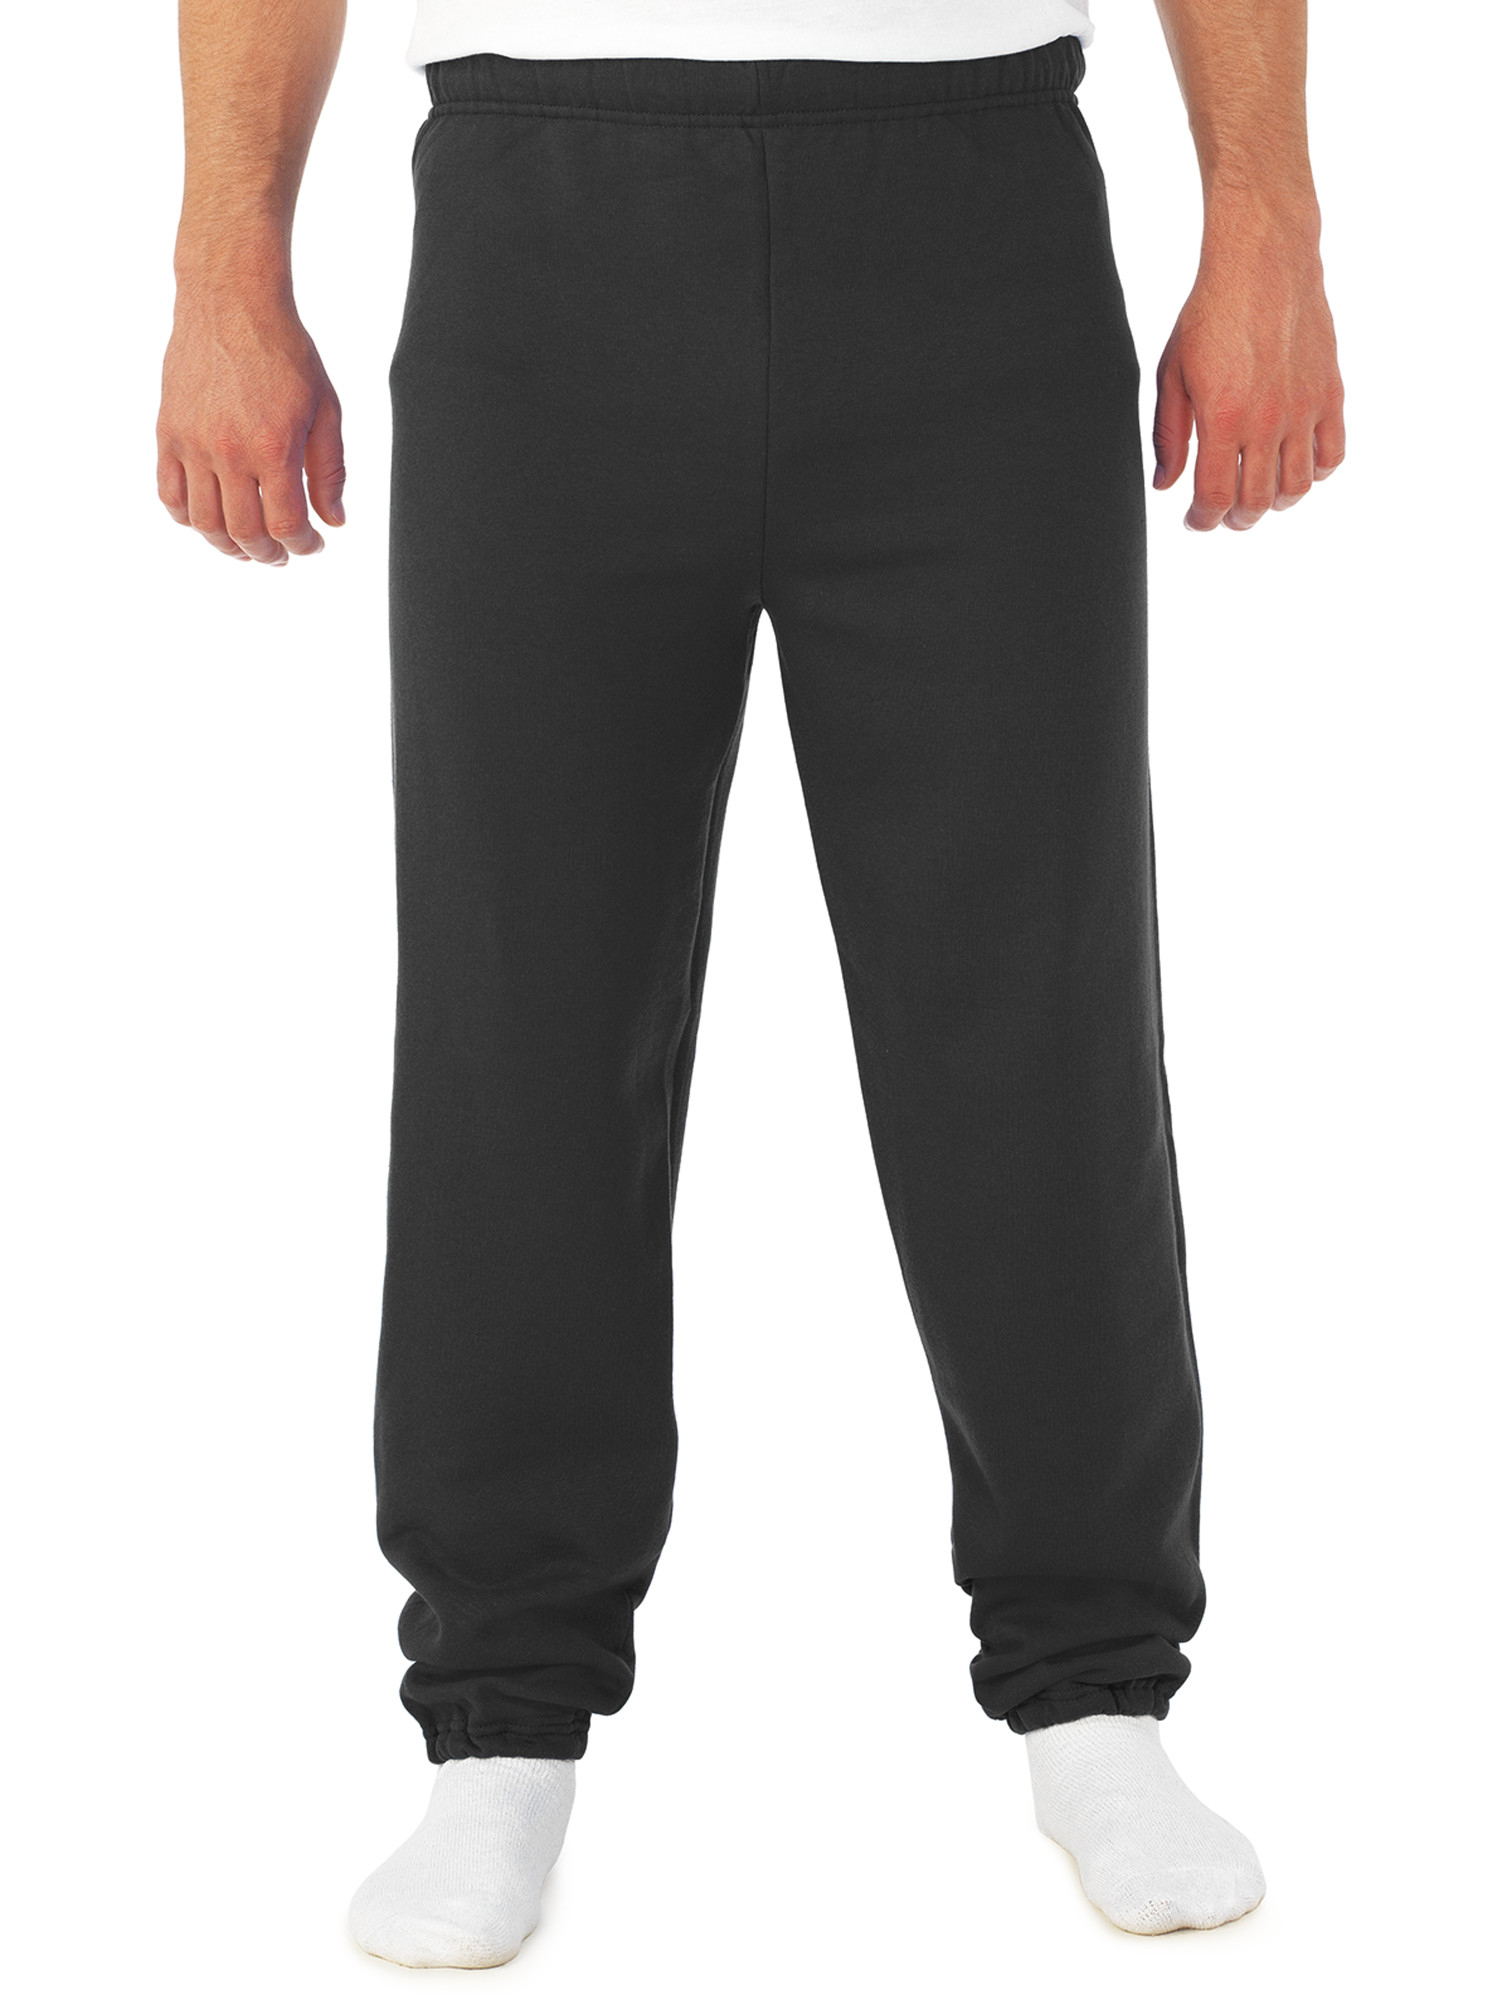 Big Men's Soft Medium-Weight Fleece Elastic Bottom Sweatpants